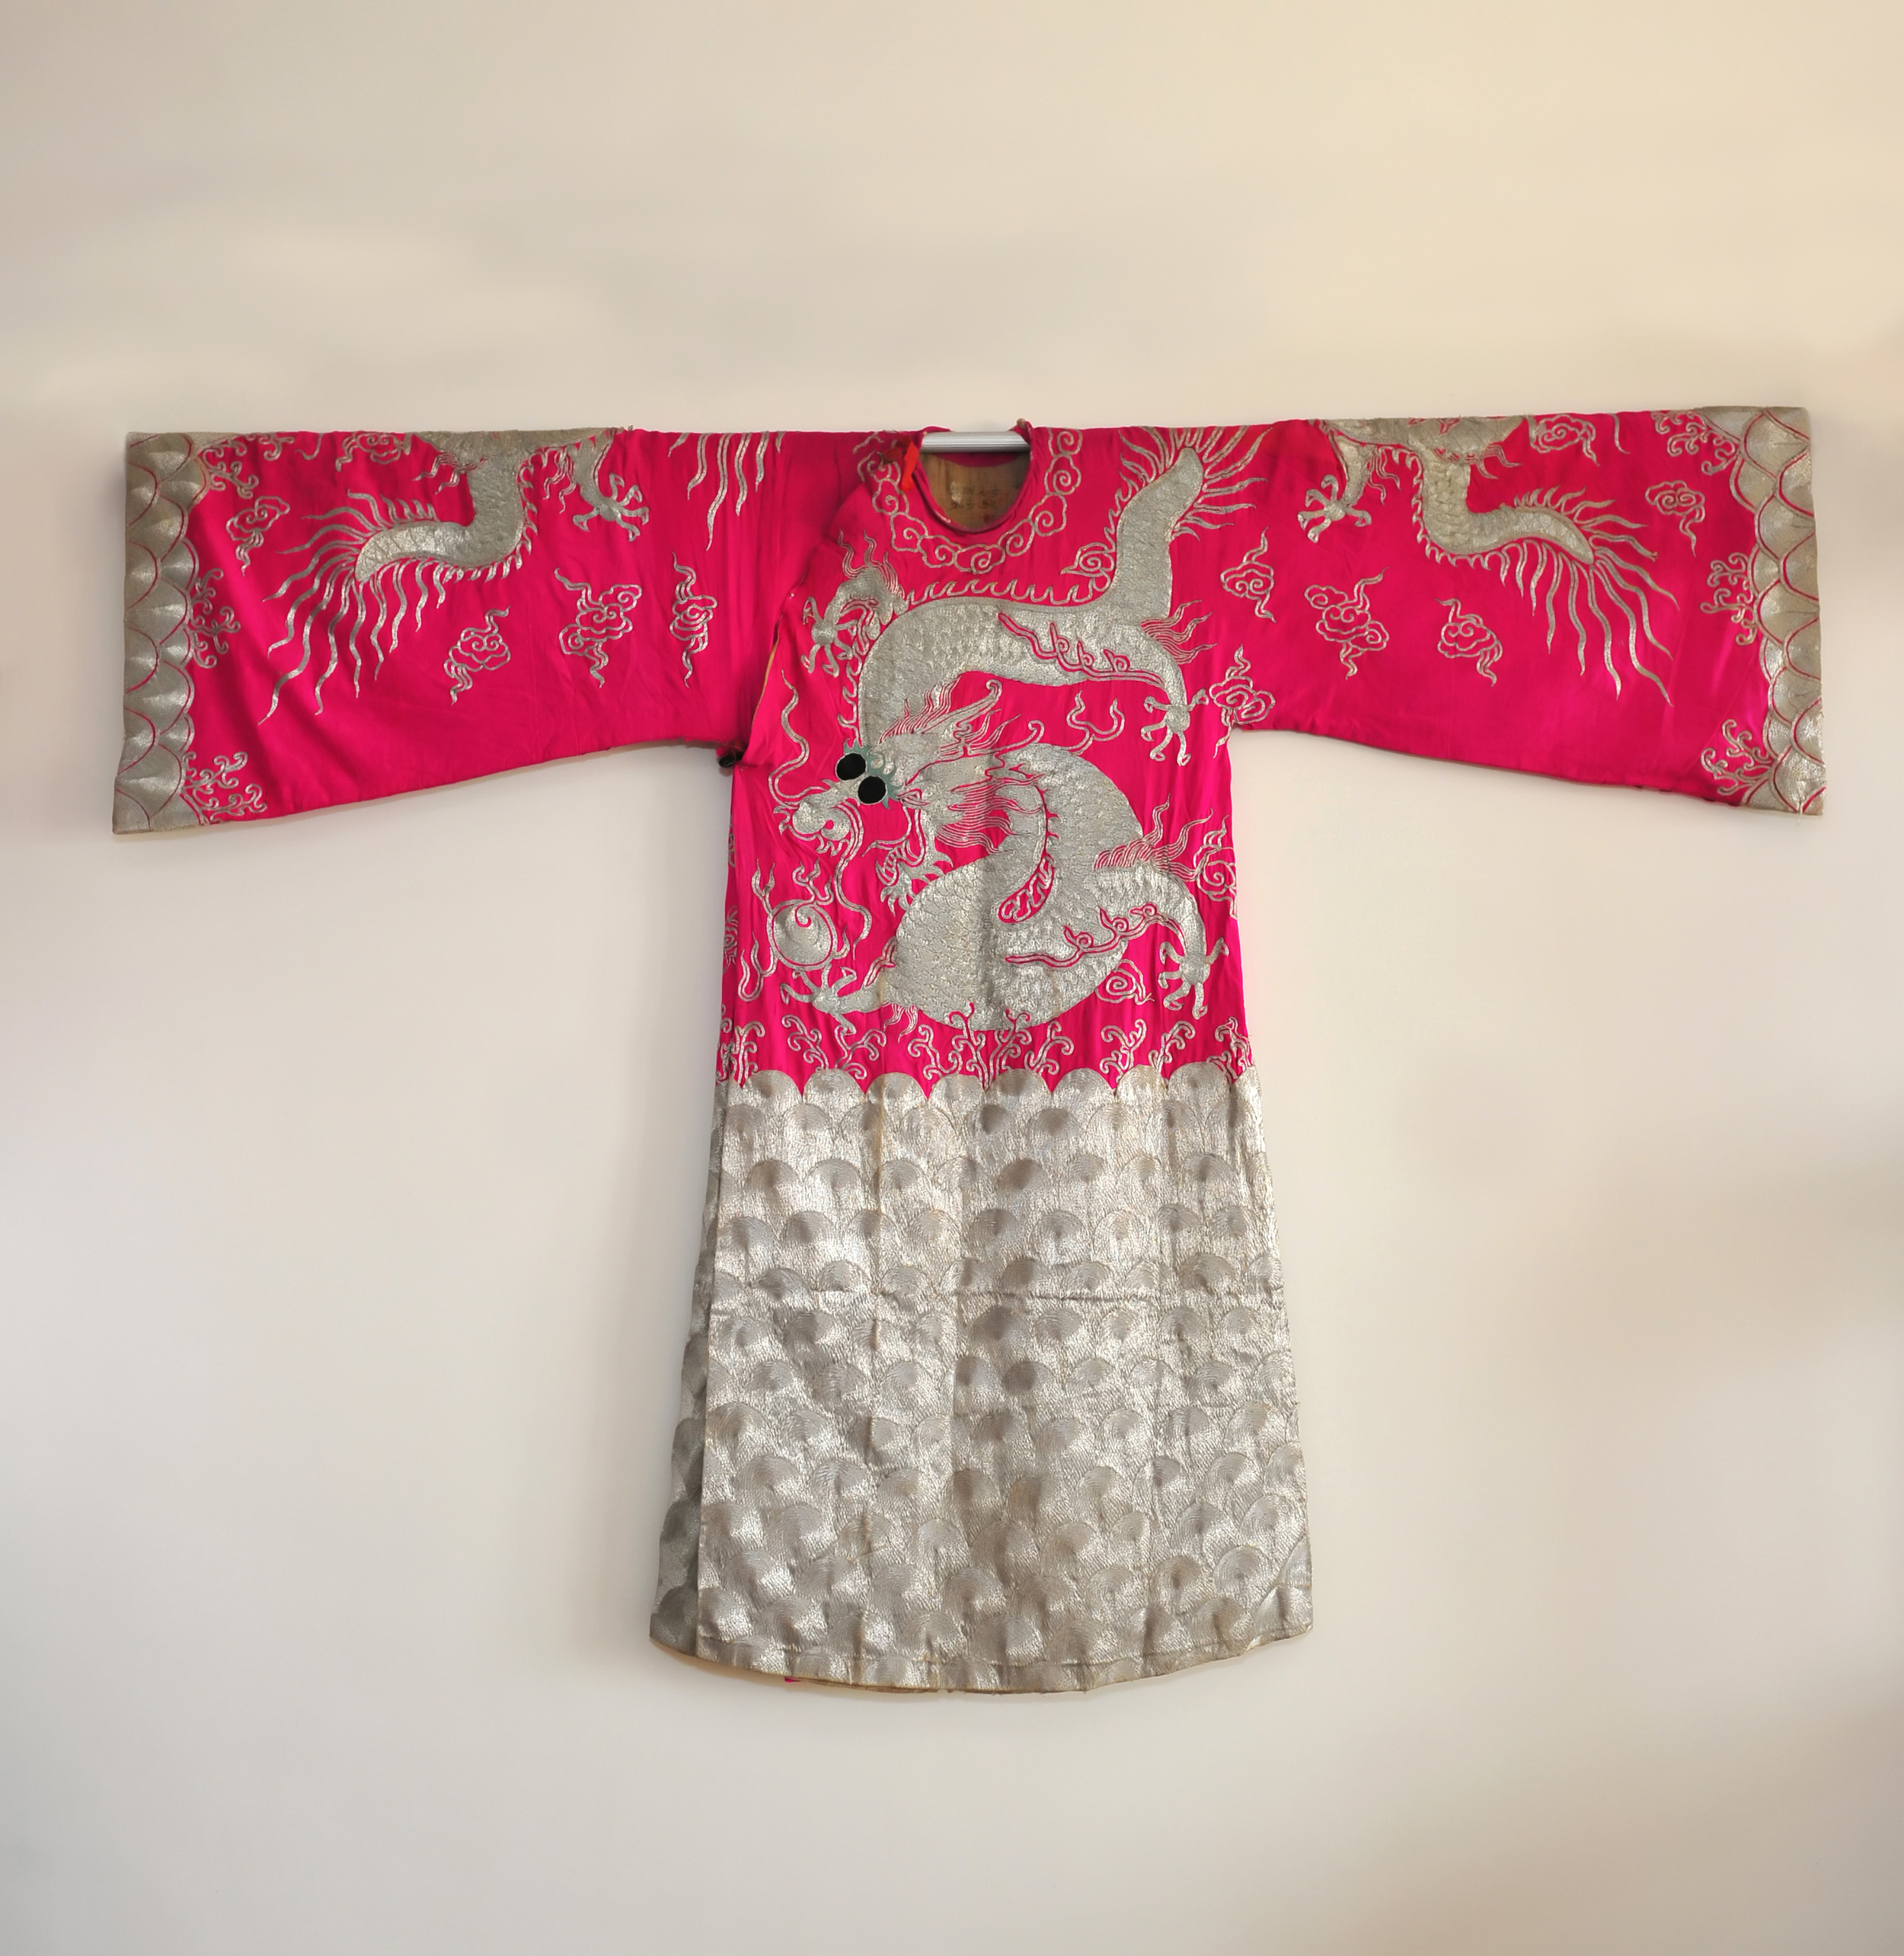 late 19th century, Hot Pink and Silver Dragon Robelate 19th century, Hot Pink and Silver Dragon Robe